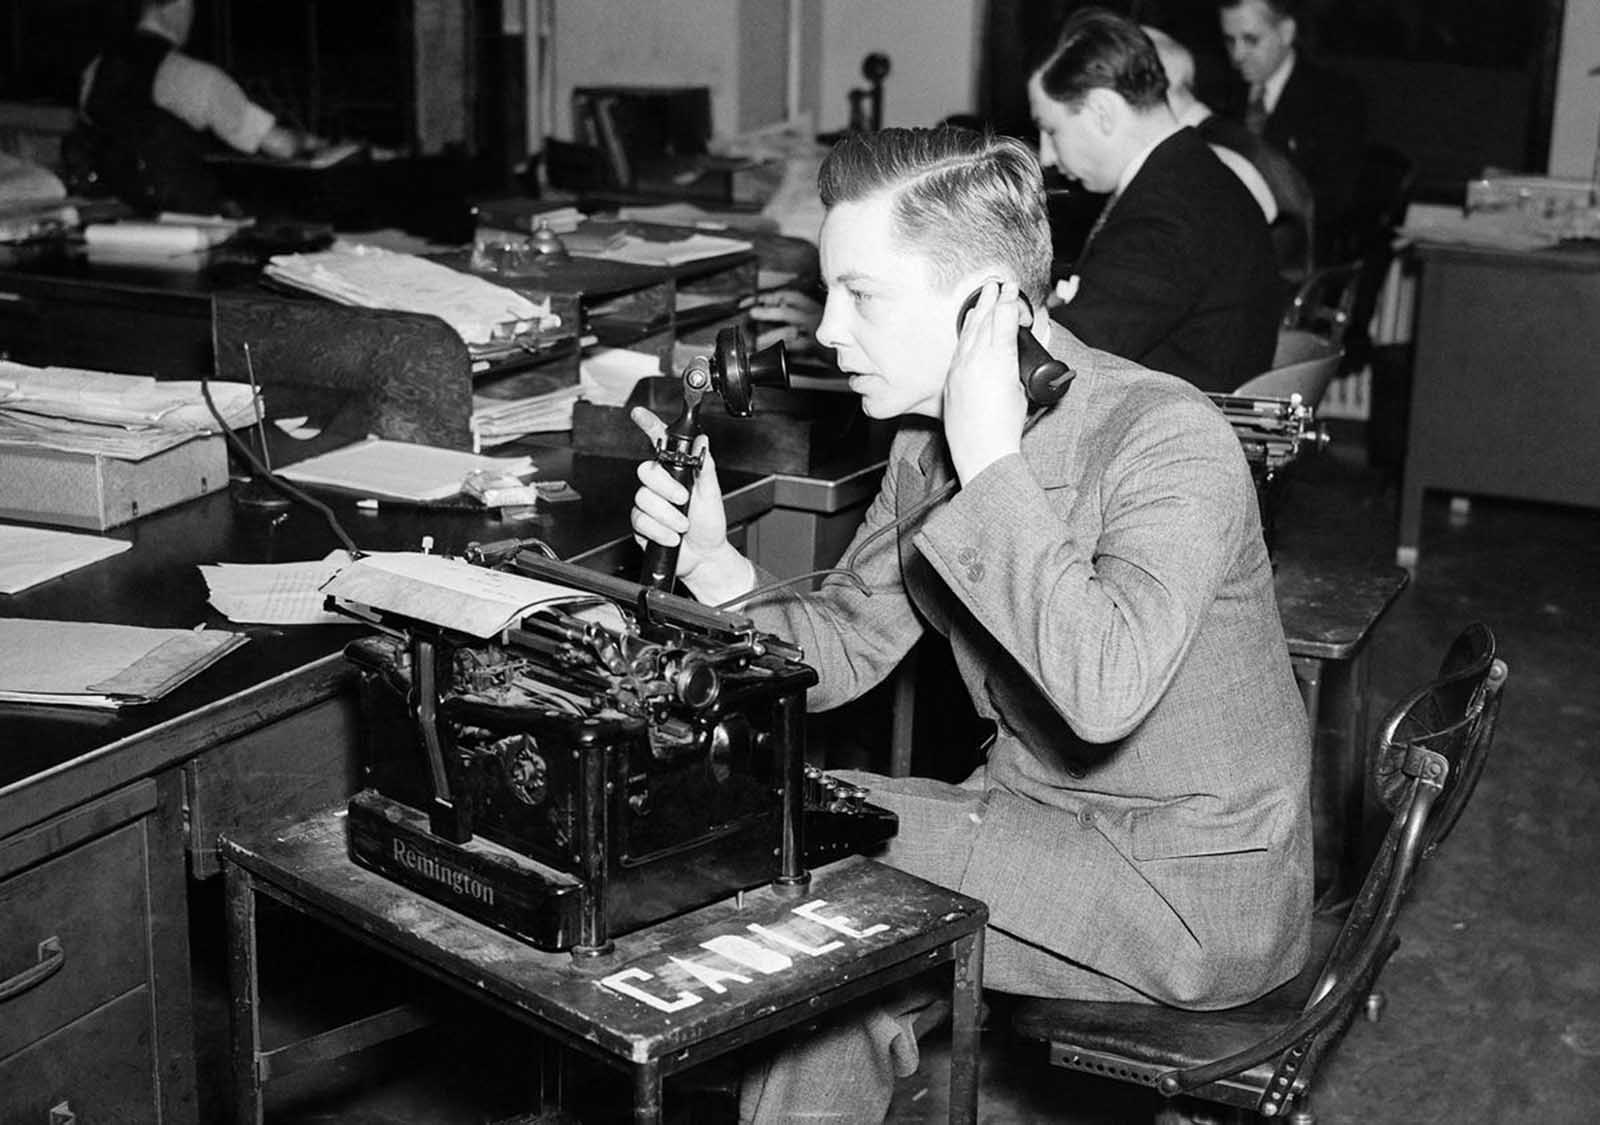 Associated Press correspondent Alvin Steinkopf broadcasting from the Free City of Danzig -- at the time, a semi-autonomous city-state tied to Poland. Steinkopf was relating the tense situation in Danzig back to America, on July 11, 1939. Germany had been demanding the incorporation of Danzing into the Third Reich for months, and appeared to be preparing military action.